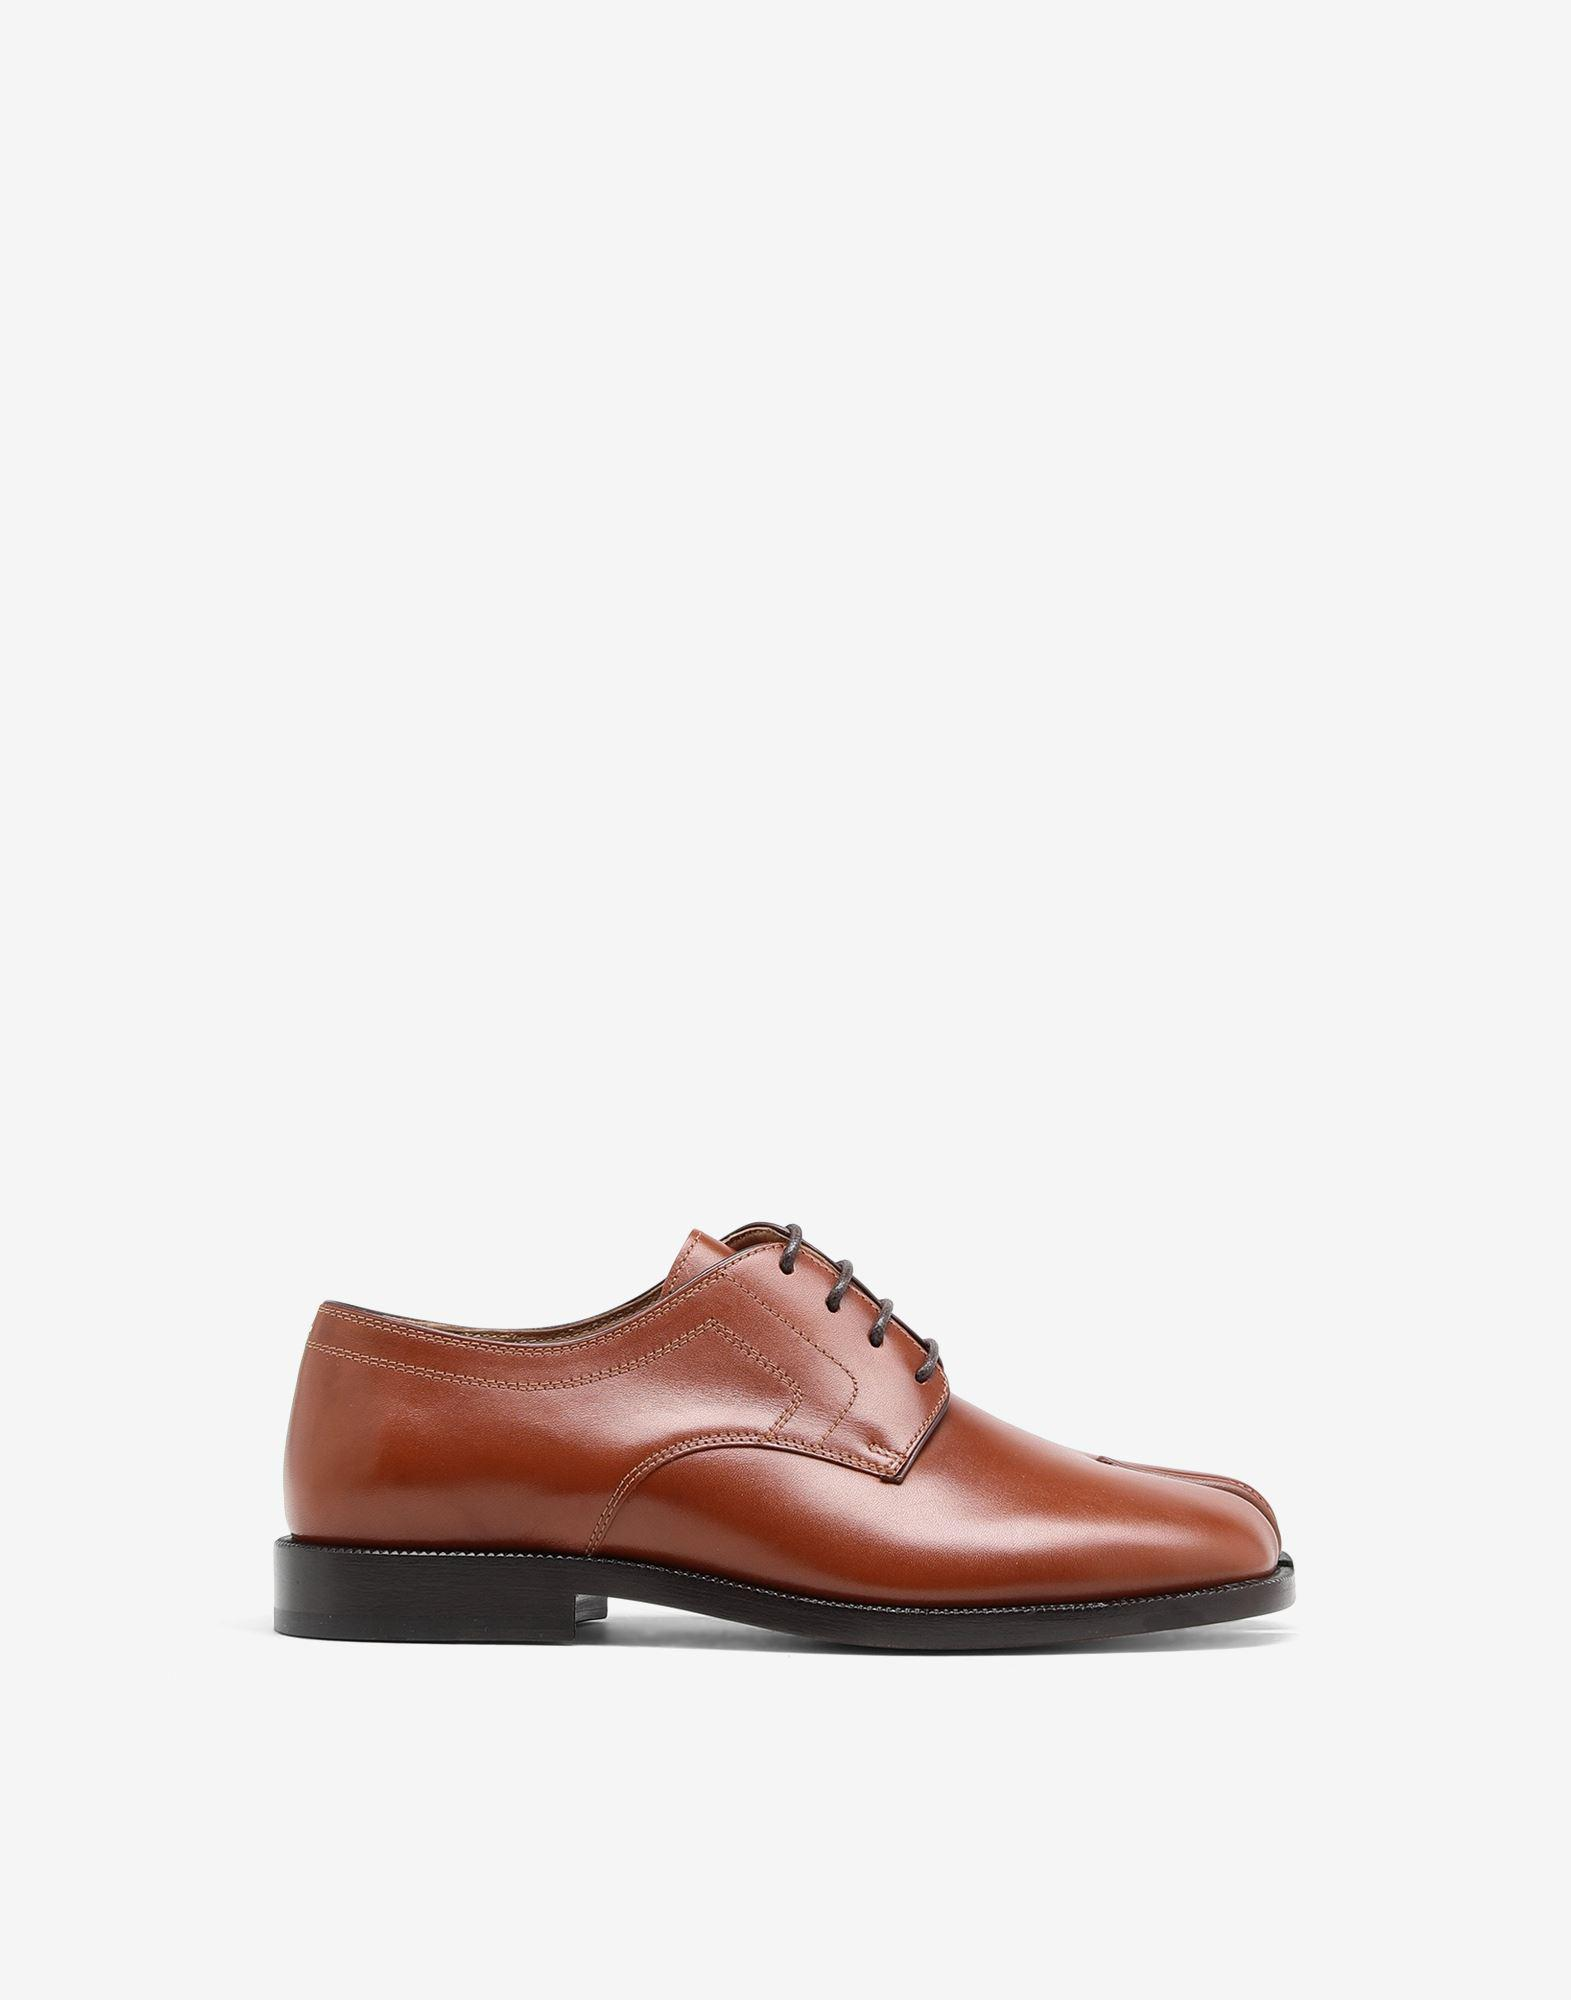 Tabi lace-up shoes